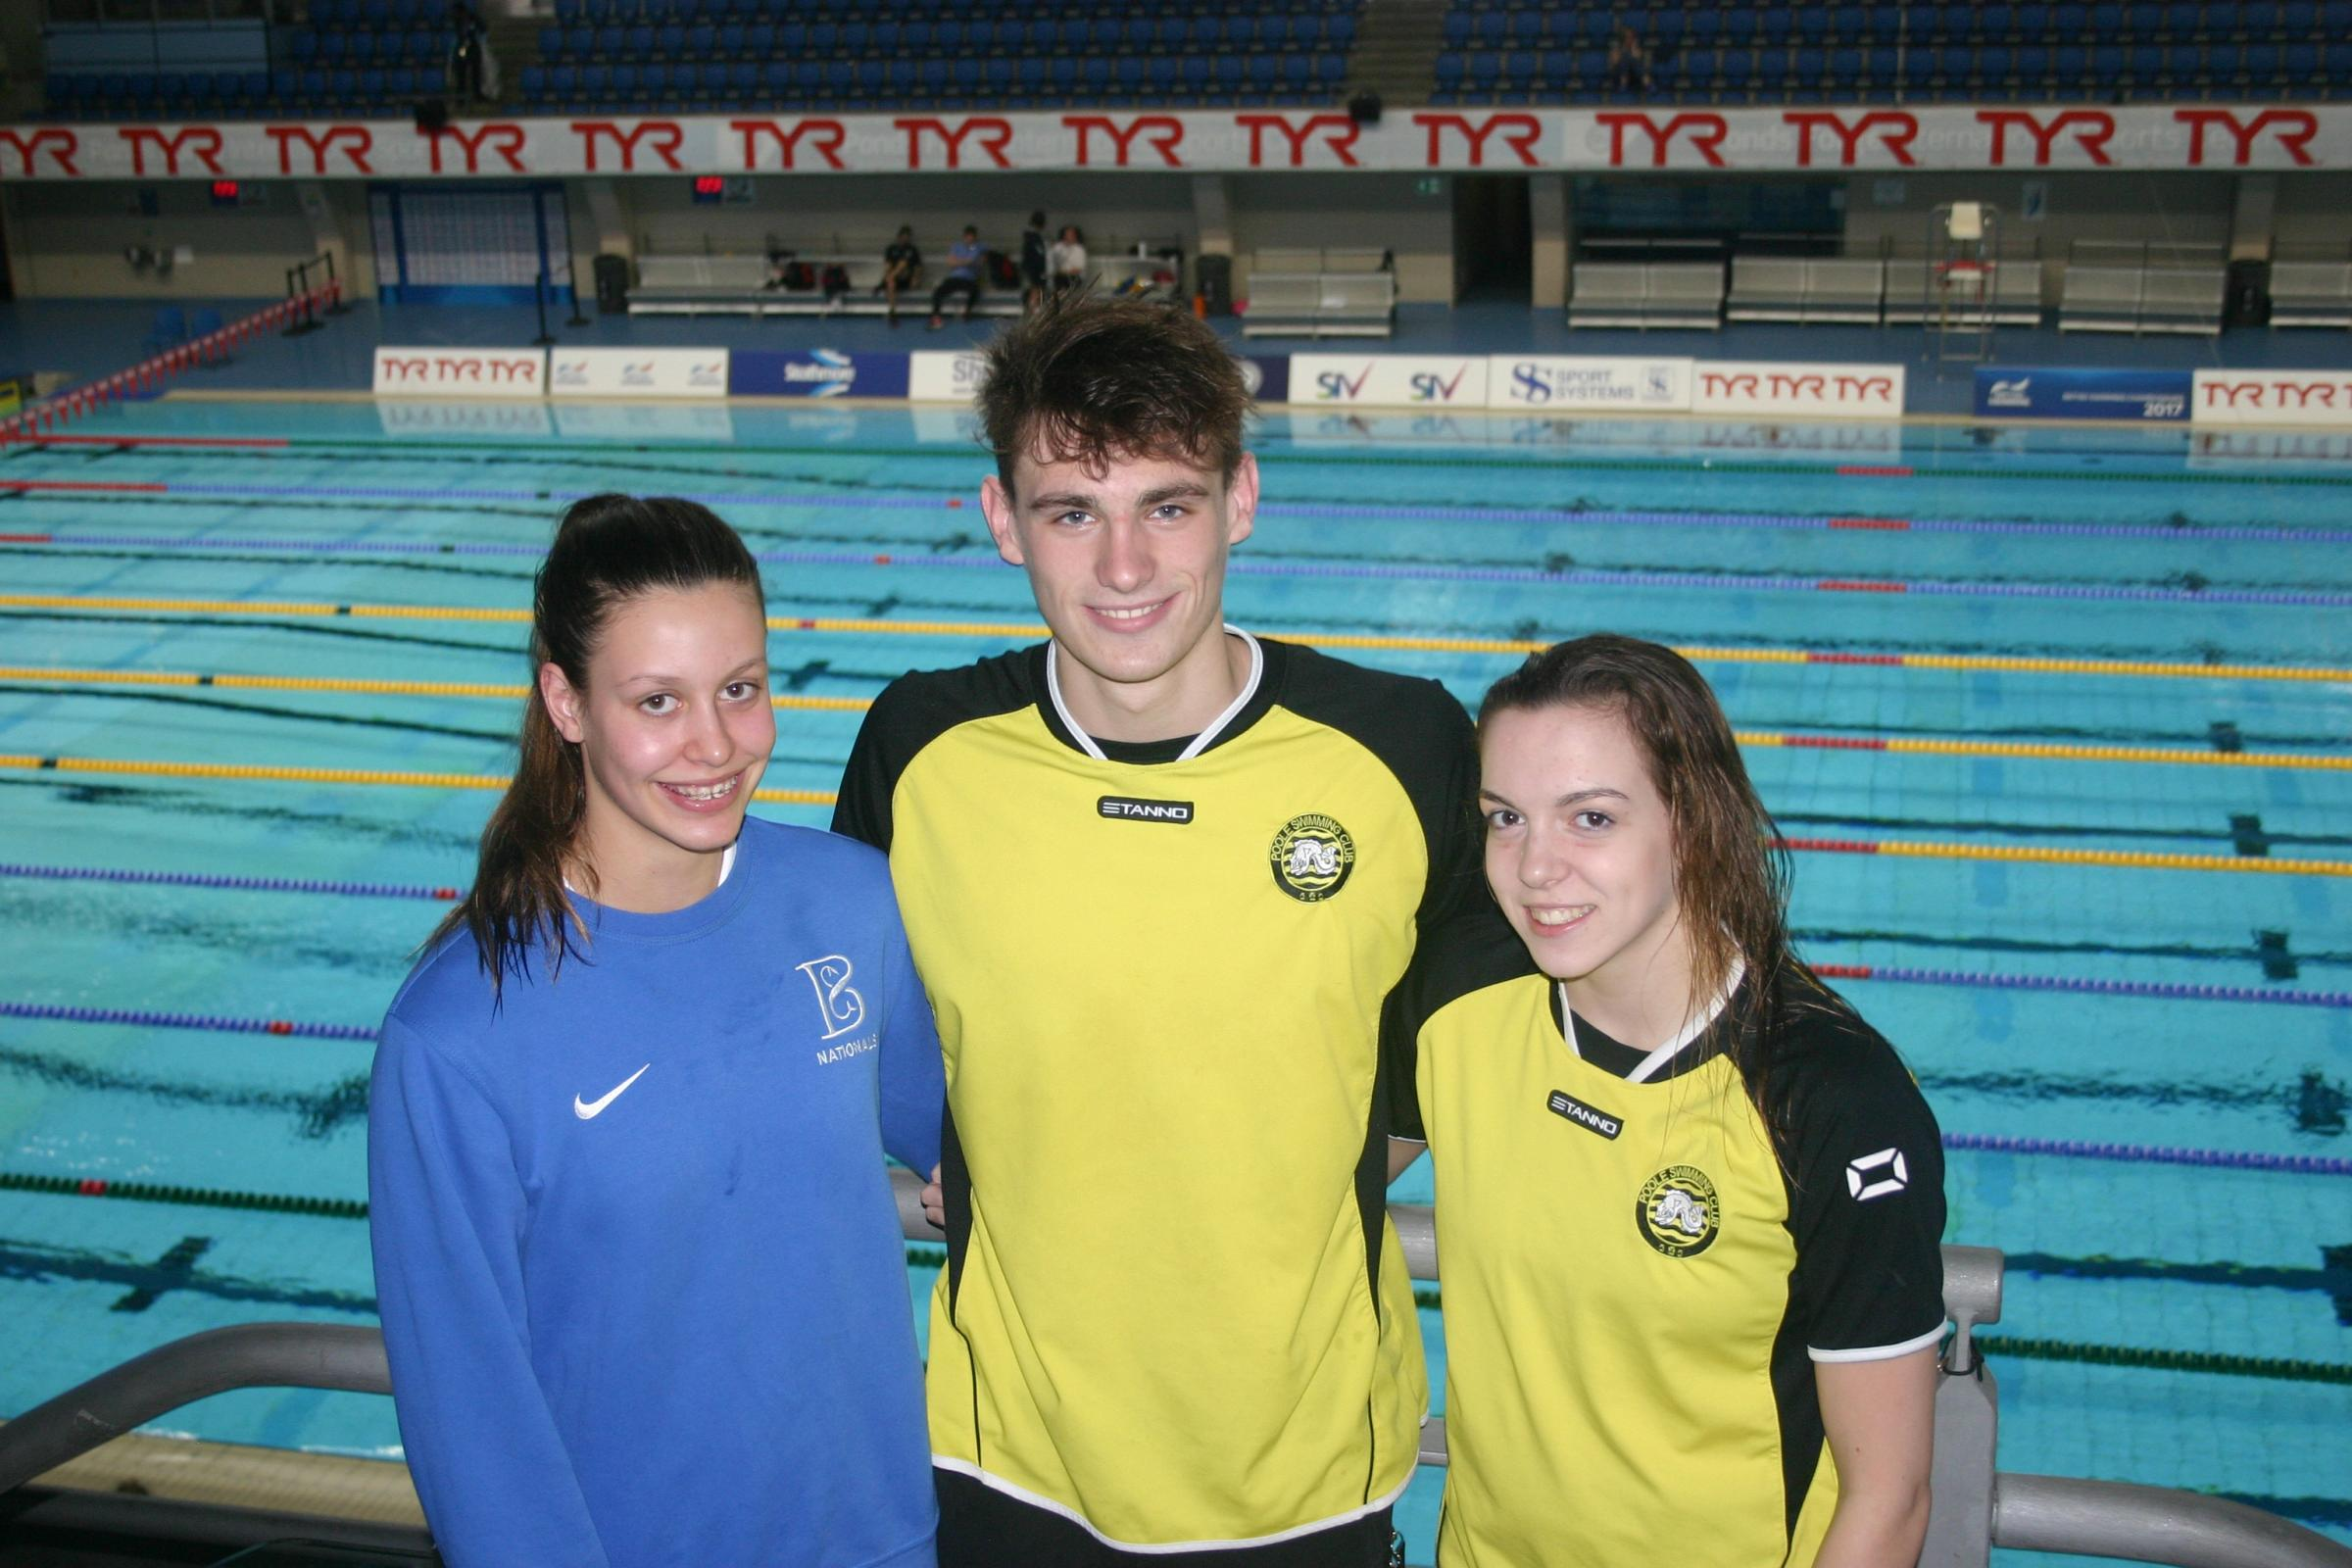 BIG HITTERS: Dorset champions (l-r) Kayla van der Merwe, Jacob Peters and Jazz McCrea at Ponds Forge (Picture: Roger Guttridge)